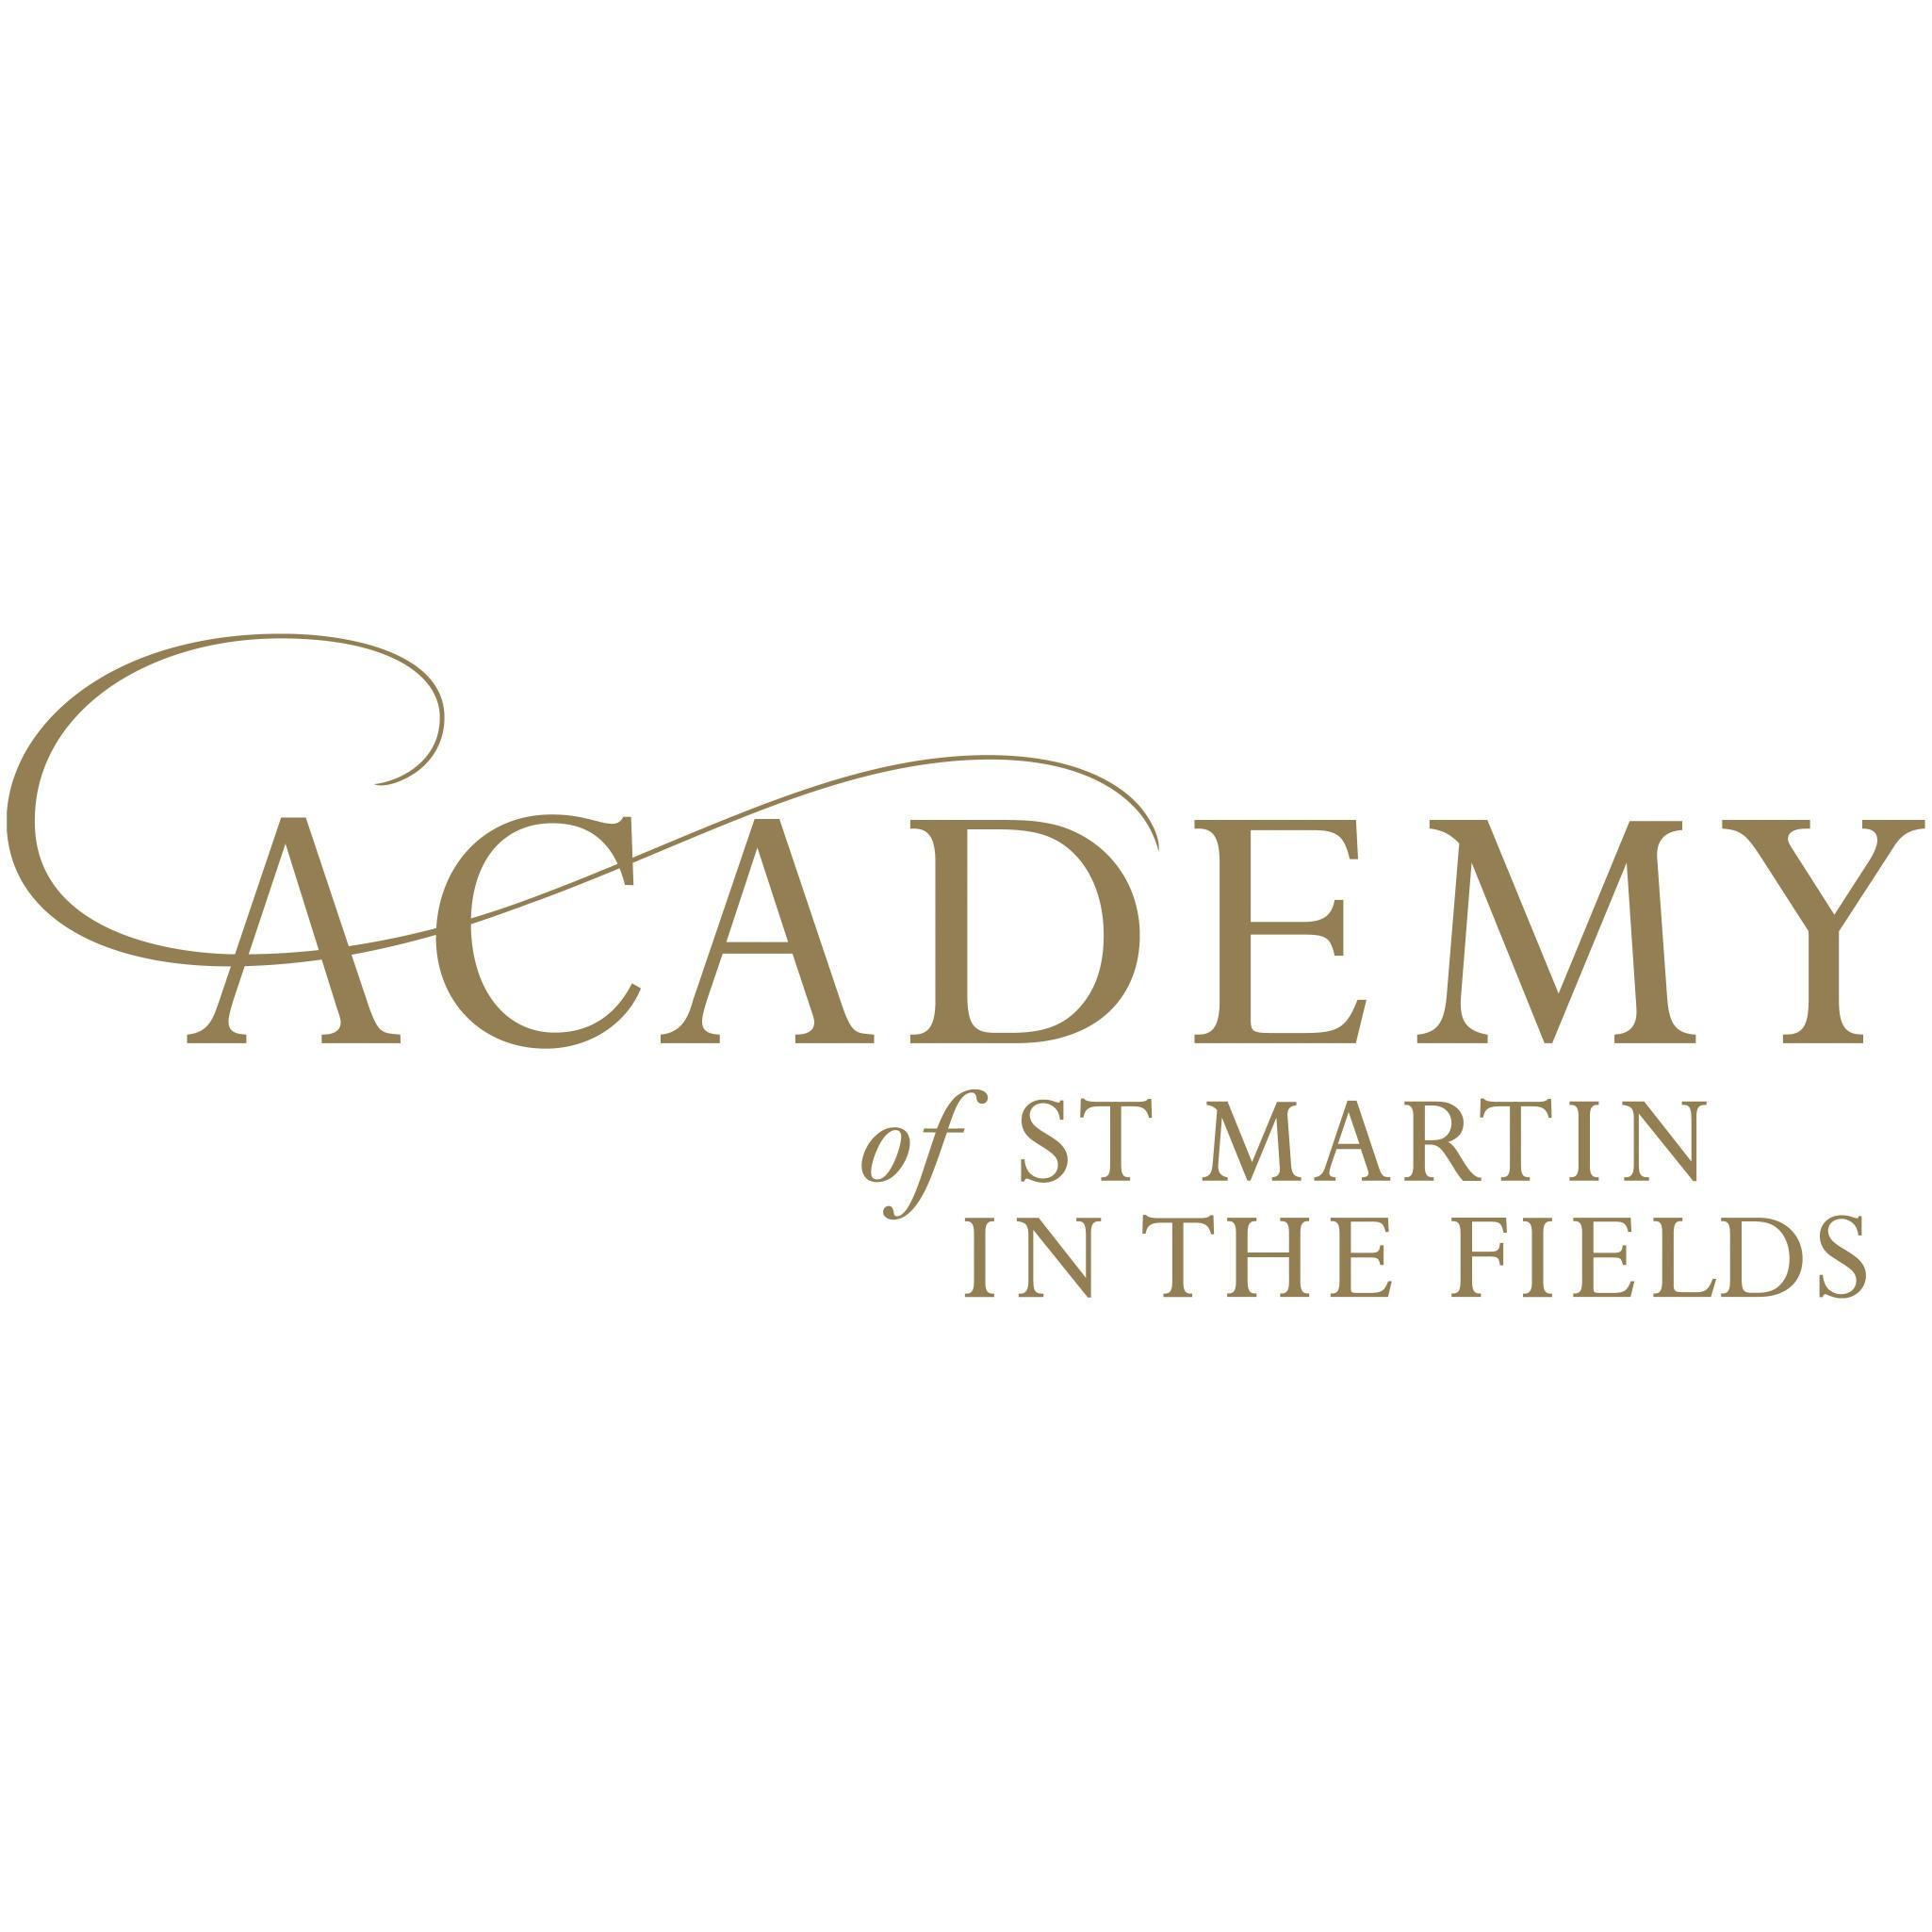 academy_of_st_martin_in_the_field_-_logo_3.jpeg